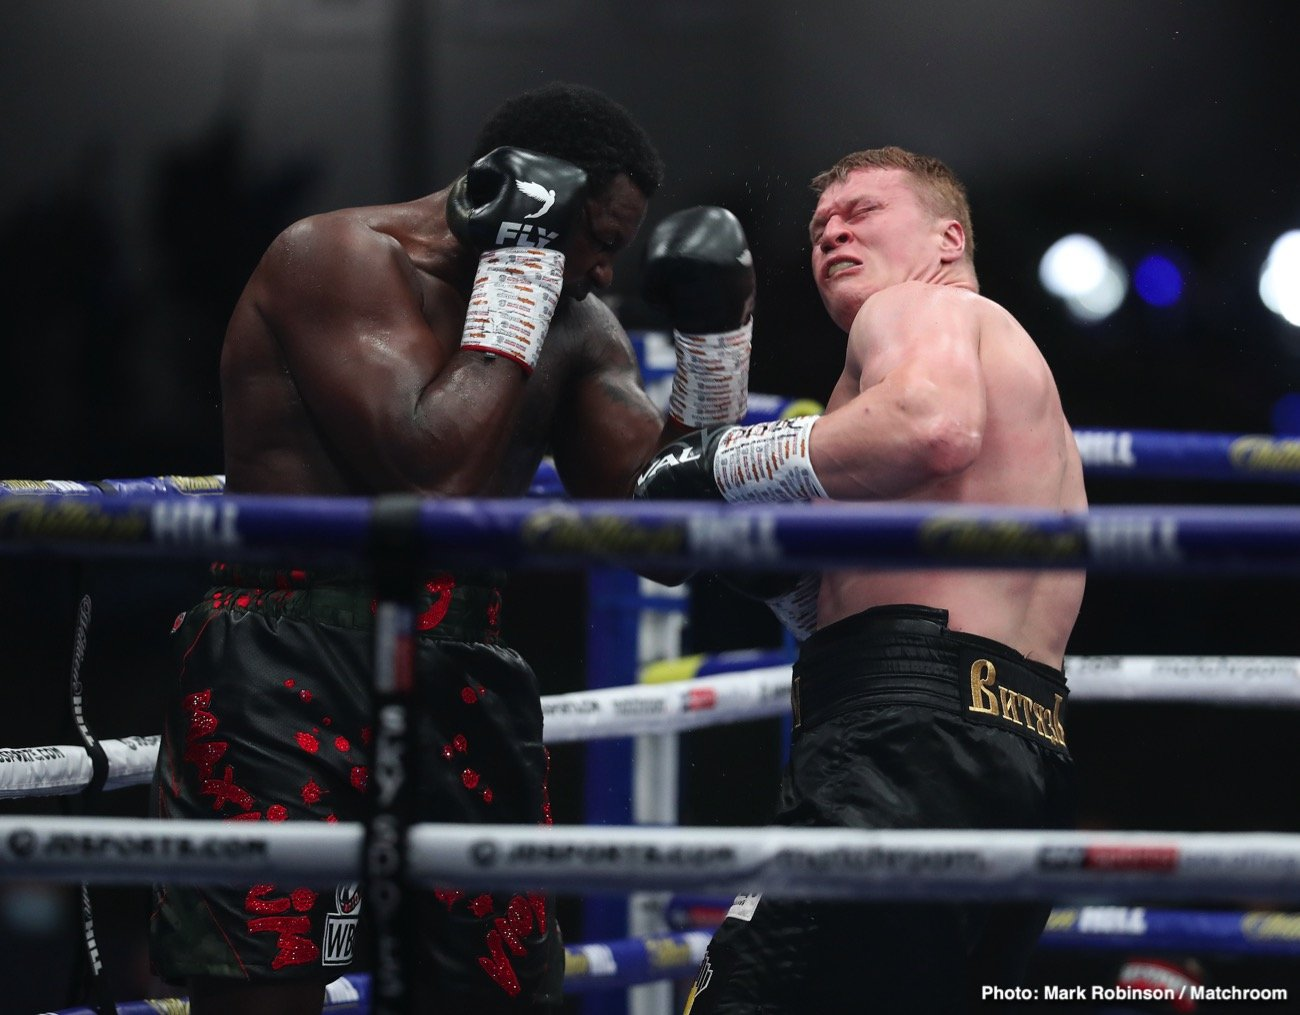 Alexander Povetkin, Dillian Whyte - Eddie Hearn has said he wants the Alexander Povetkin Vs. Dillian Whyte rematch to take place fast; in November in fact. Speaking with IFL TV, Hearn mentioned the dates November 14 and November 21. That would be some quick turnaround for both fighters, Whyte who was violently knocked out, and Povetkin who turned 41 years of age this month. But will the rematch actually happen then?